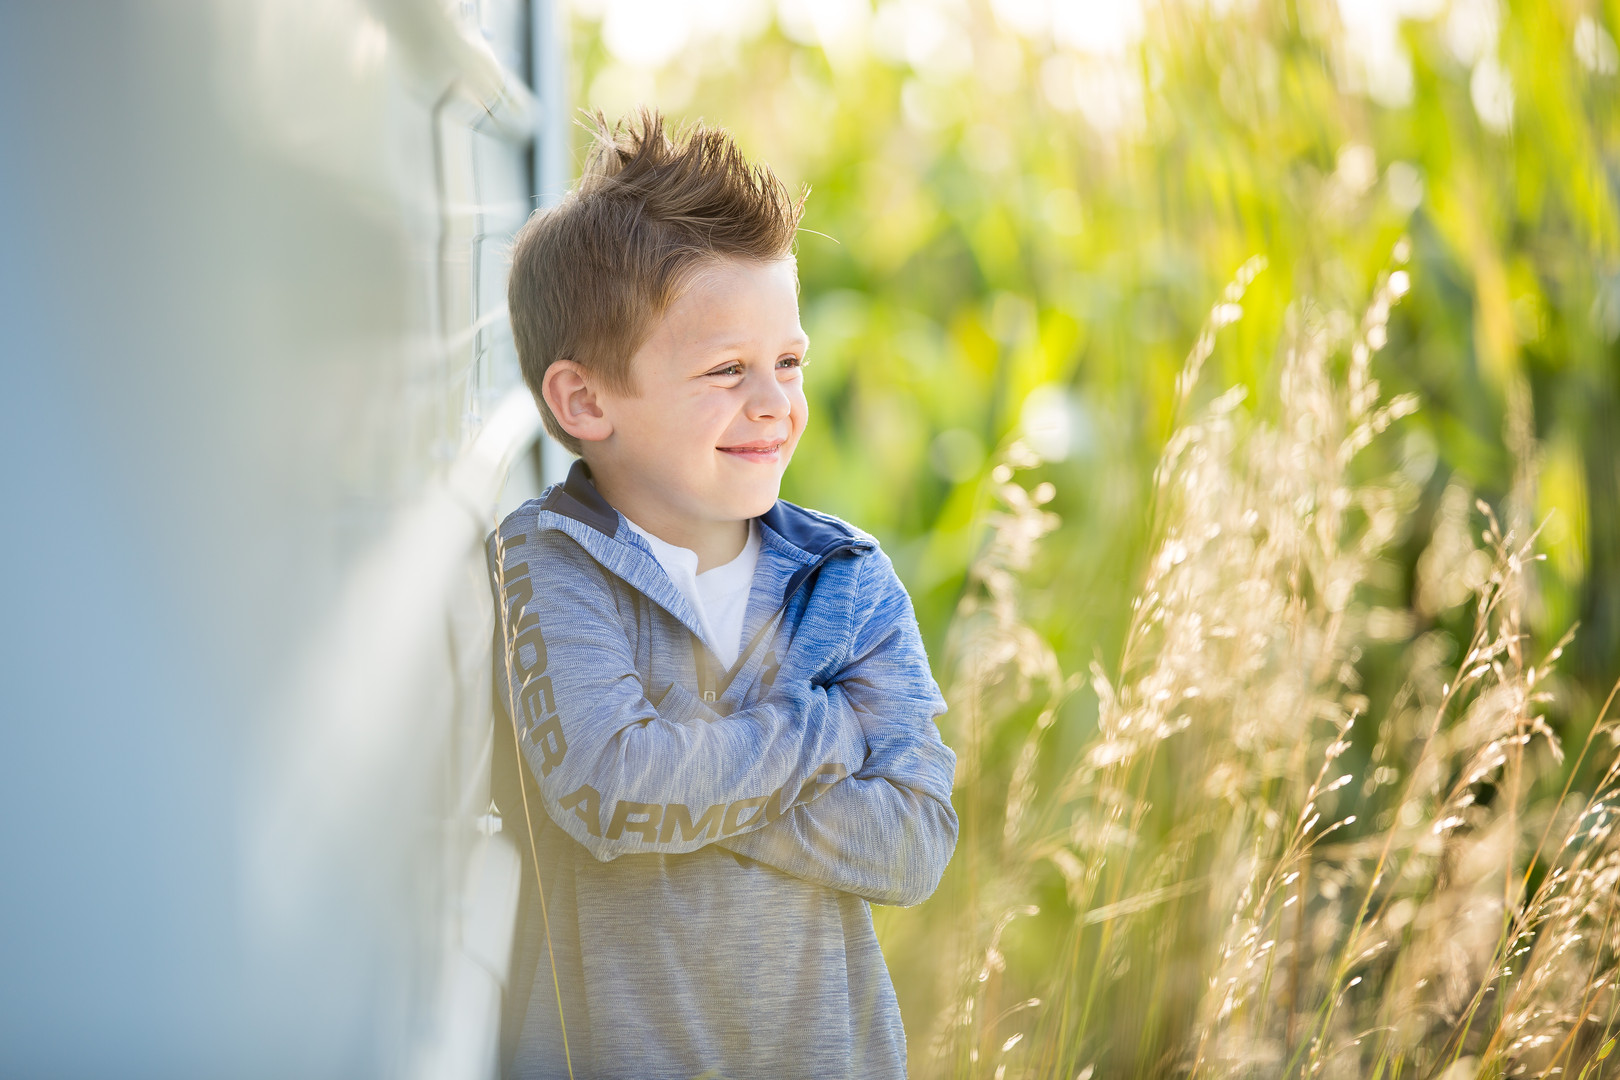 Family Photography | Boy Leaning